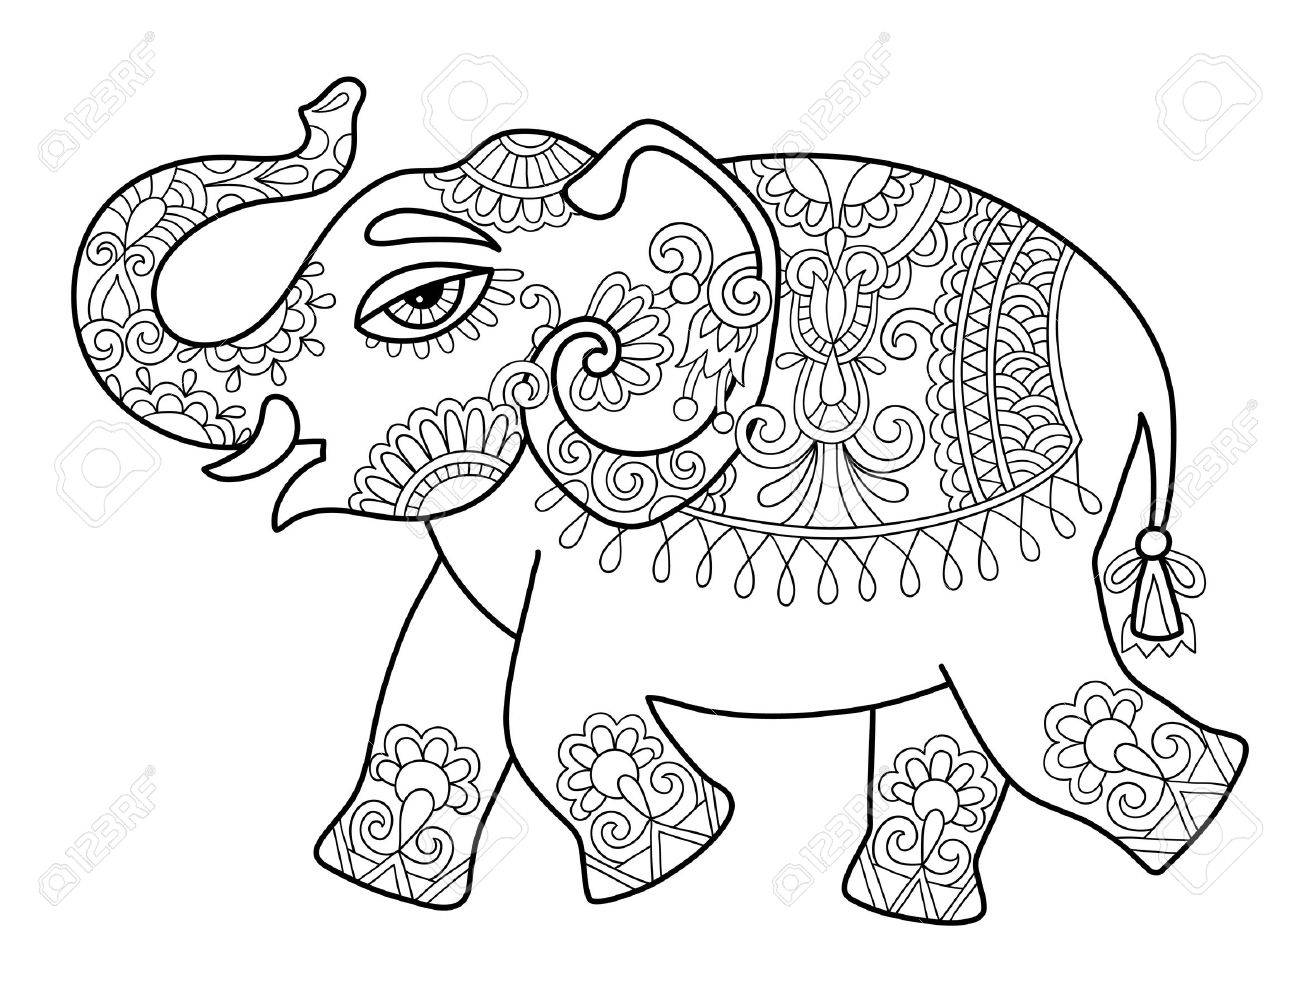 1300x1004 Ethnic Indian Elephant Line Original Drawing, Adults Coloring